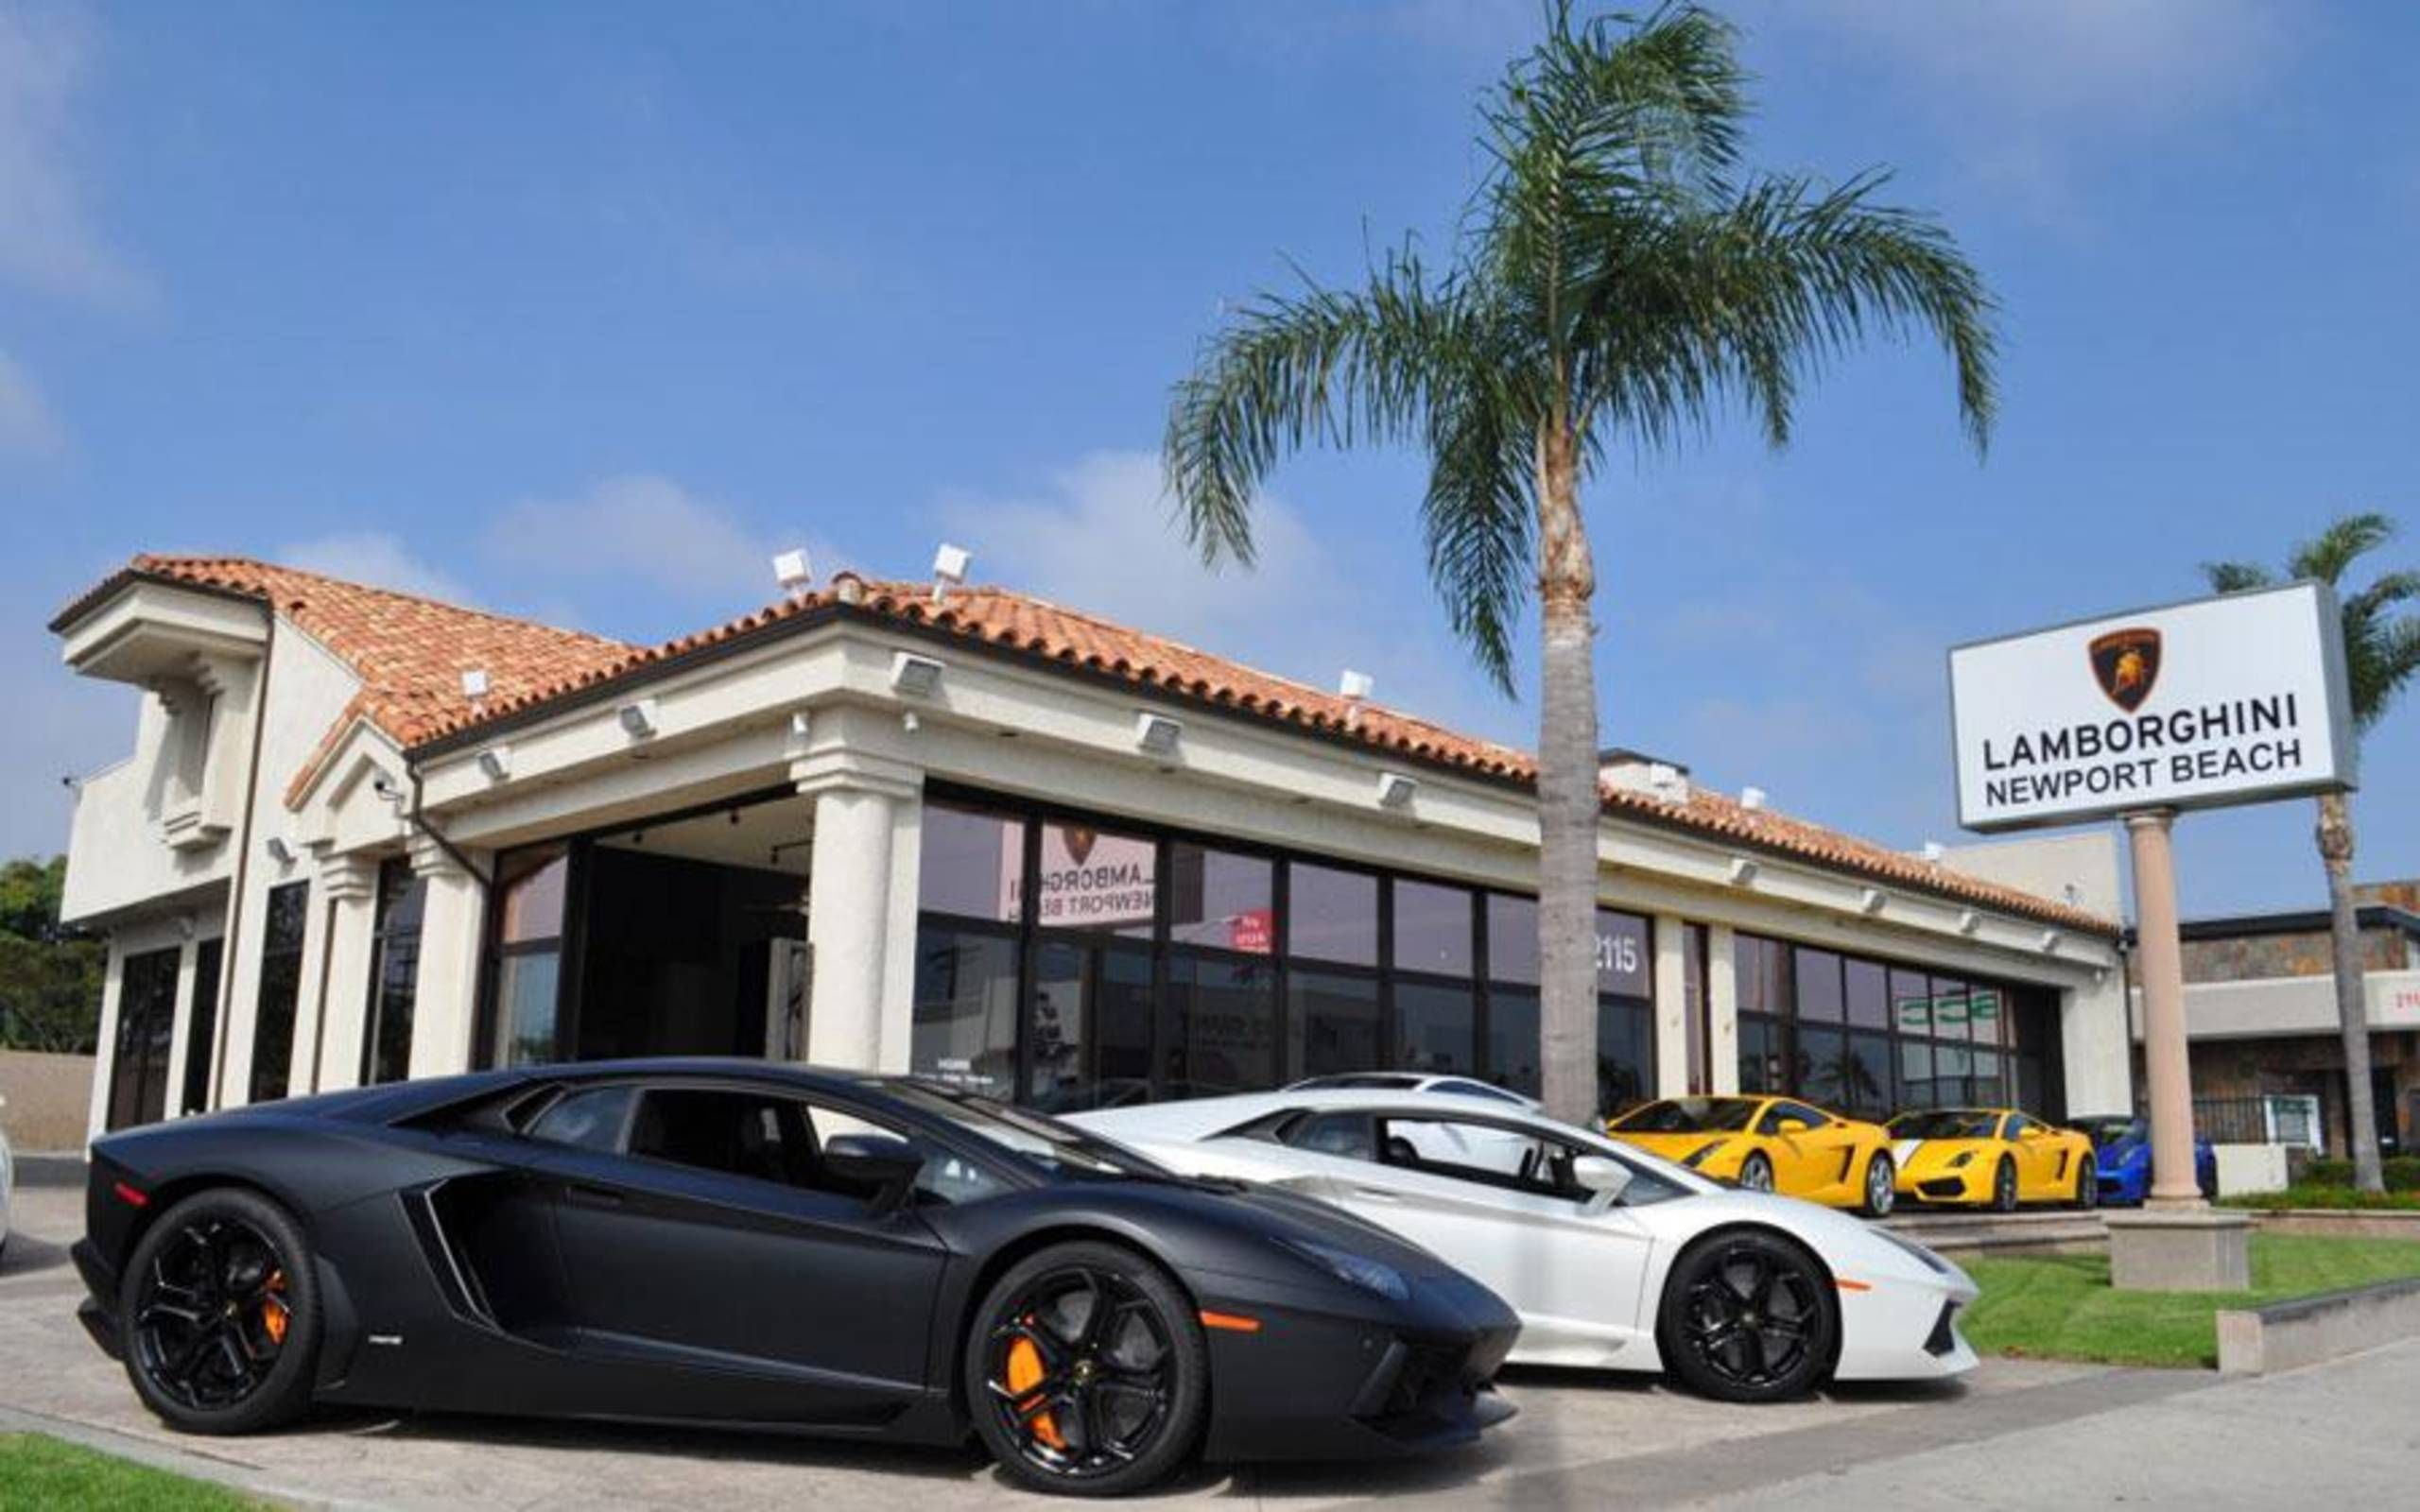 Lamborghini Newport Beach Is First With New Exhaust For The Lp 700 4 Aventador